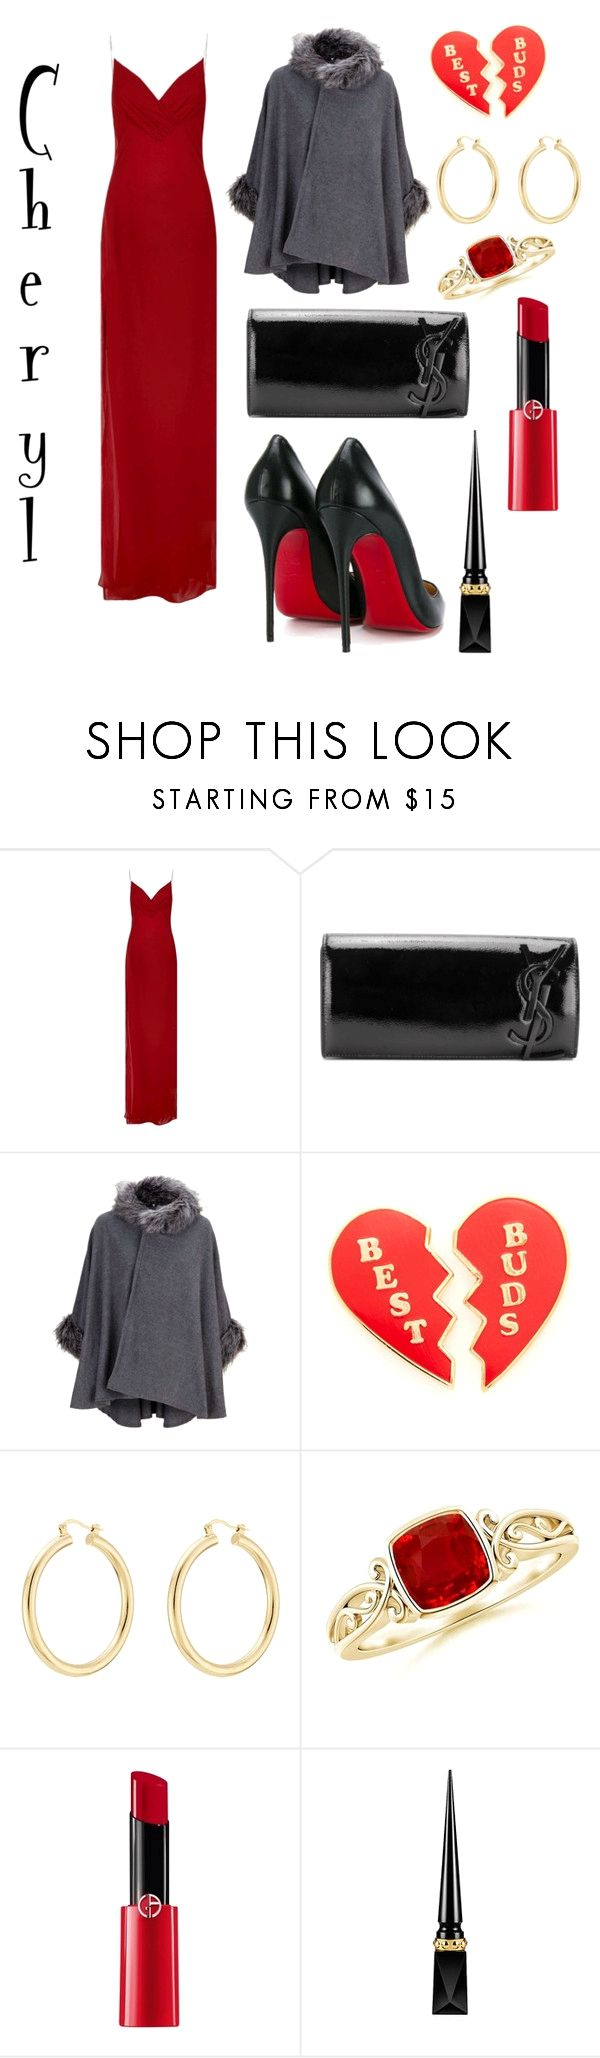 """Cheryl Blossom #1"" by xoxodaniella on Polyvore featuring Balmain, Yves Saint Laurent, Georgia Perry, Isabel Marant, Giorgio Armani and Christian Louboutin on the lookout for limited offer,no duty and free shipping.#shoes #womenstyle #heels #womenheels #womenshoes  #fashionheels #redheels #louboutin #louboutinheels #christanlouboutinshoes #louboutinworld"